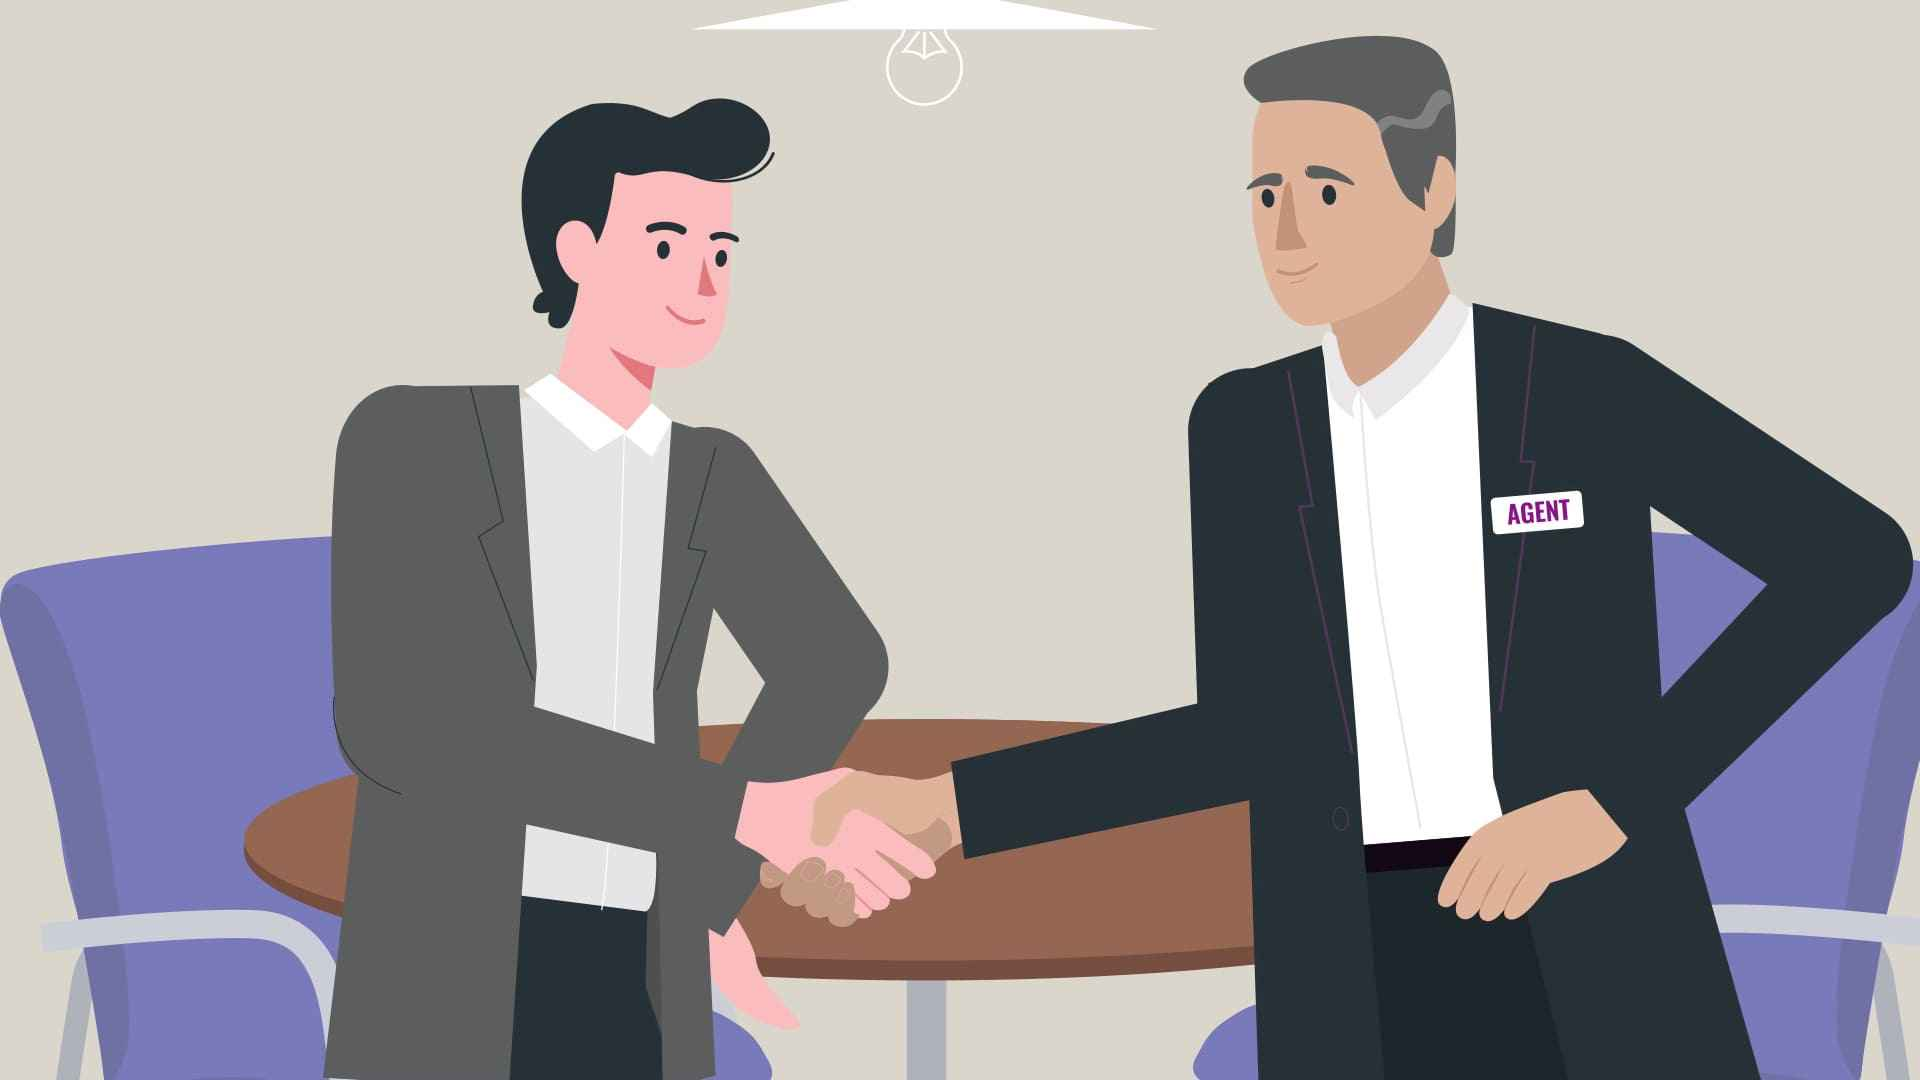 Reaching an agreement during negotiations in Animated Explainer Video